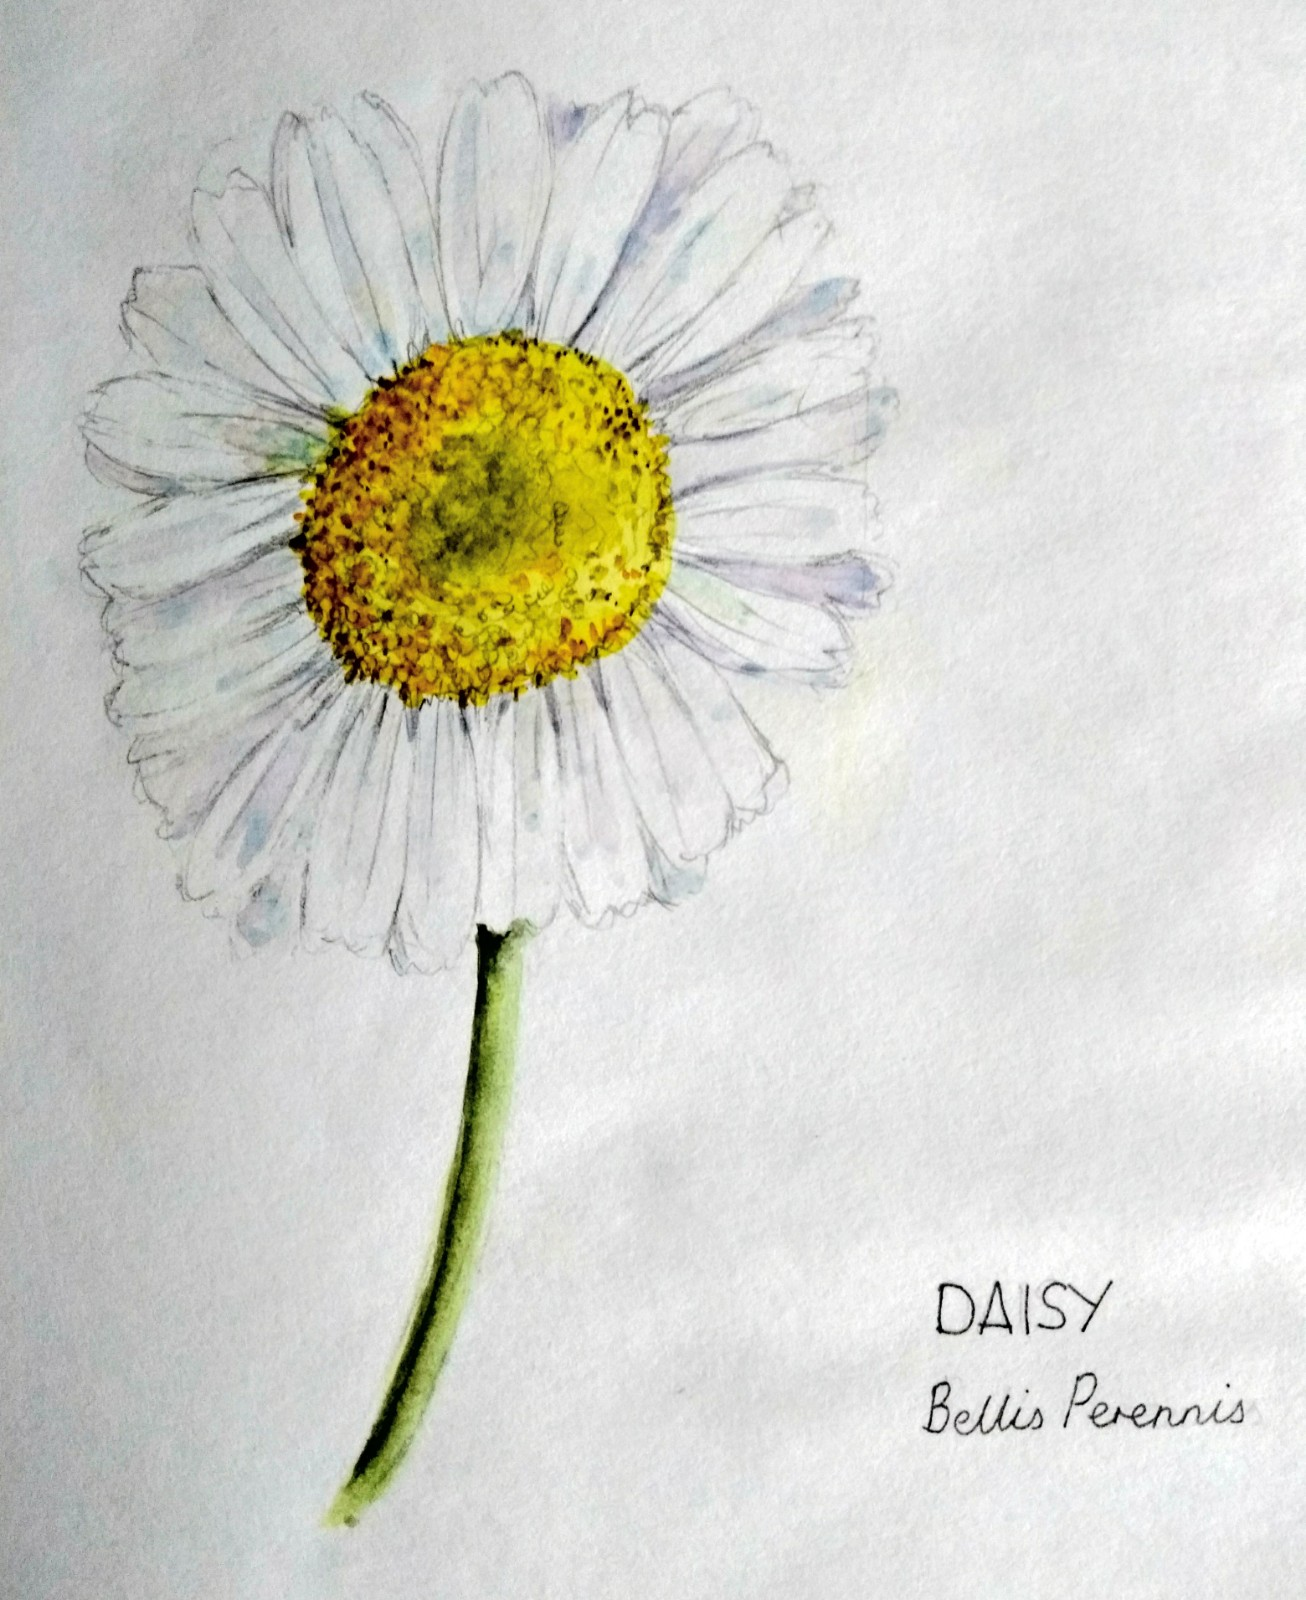 Hello, unique little daisy! How are you today?    May I draw your picture? I notice your petals are very wonky, and your centre floret has a rather nice darker patch......